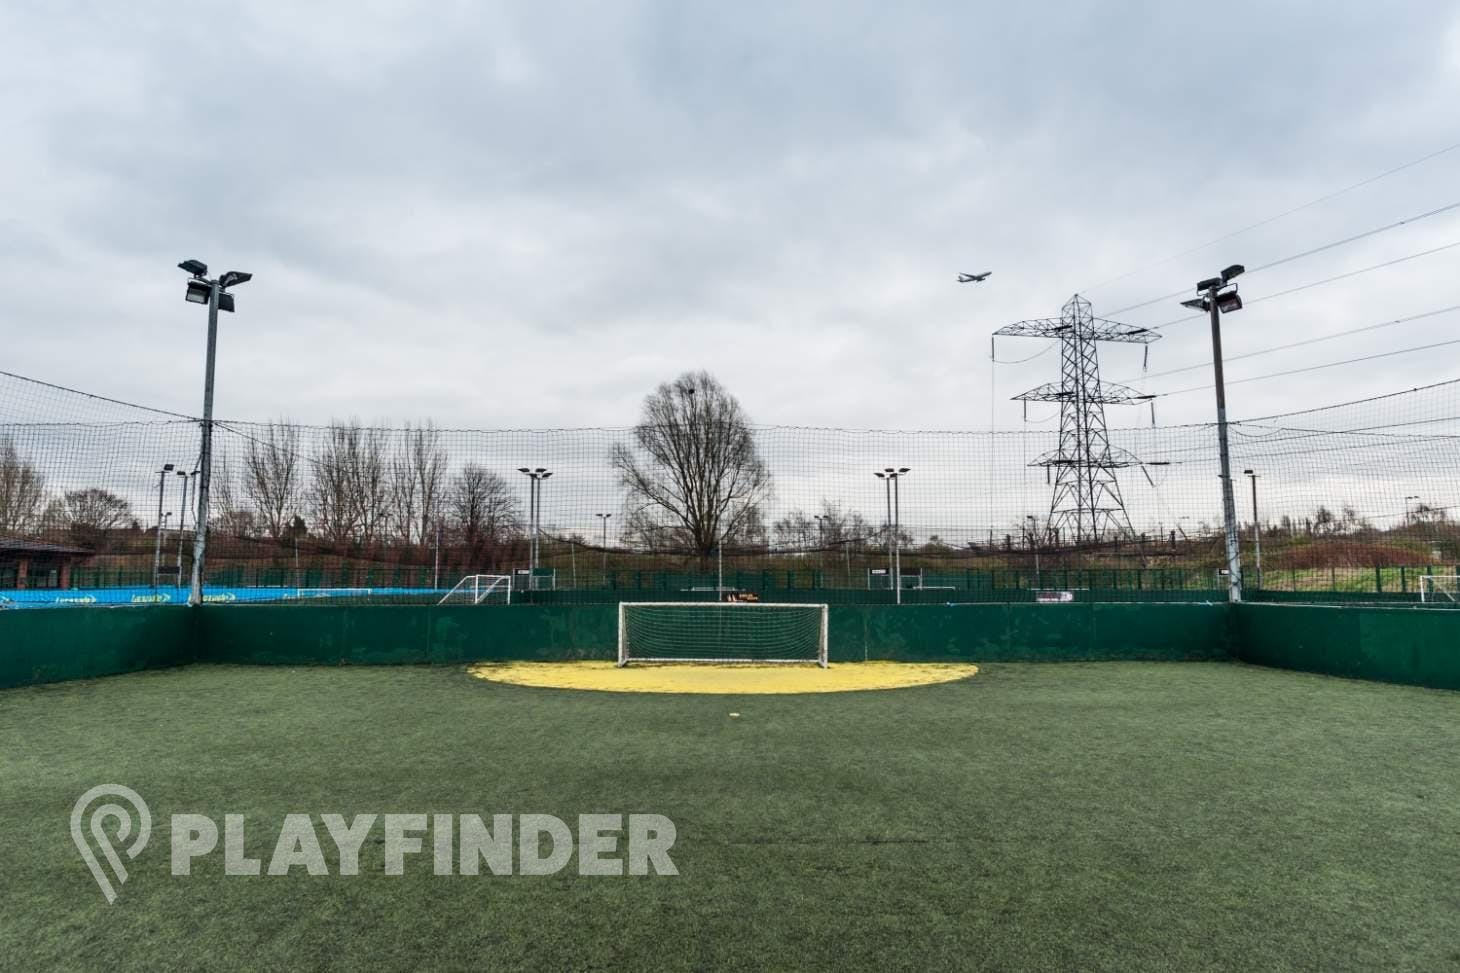 Powerleague Stockport 5 a side | 3G Astroturf football pitch